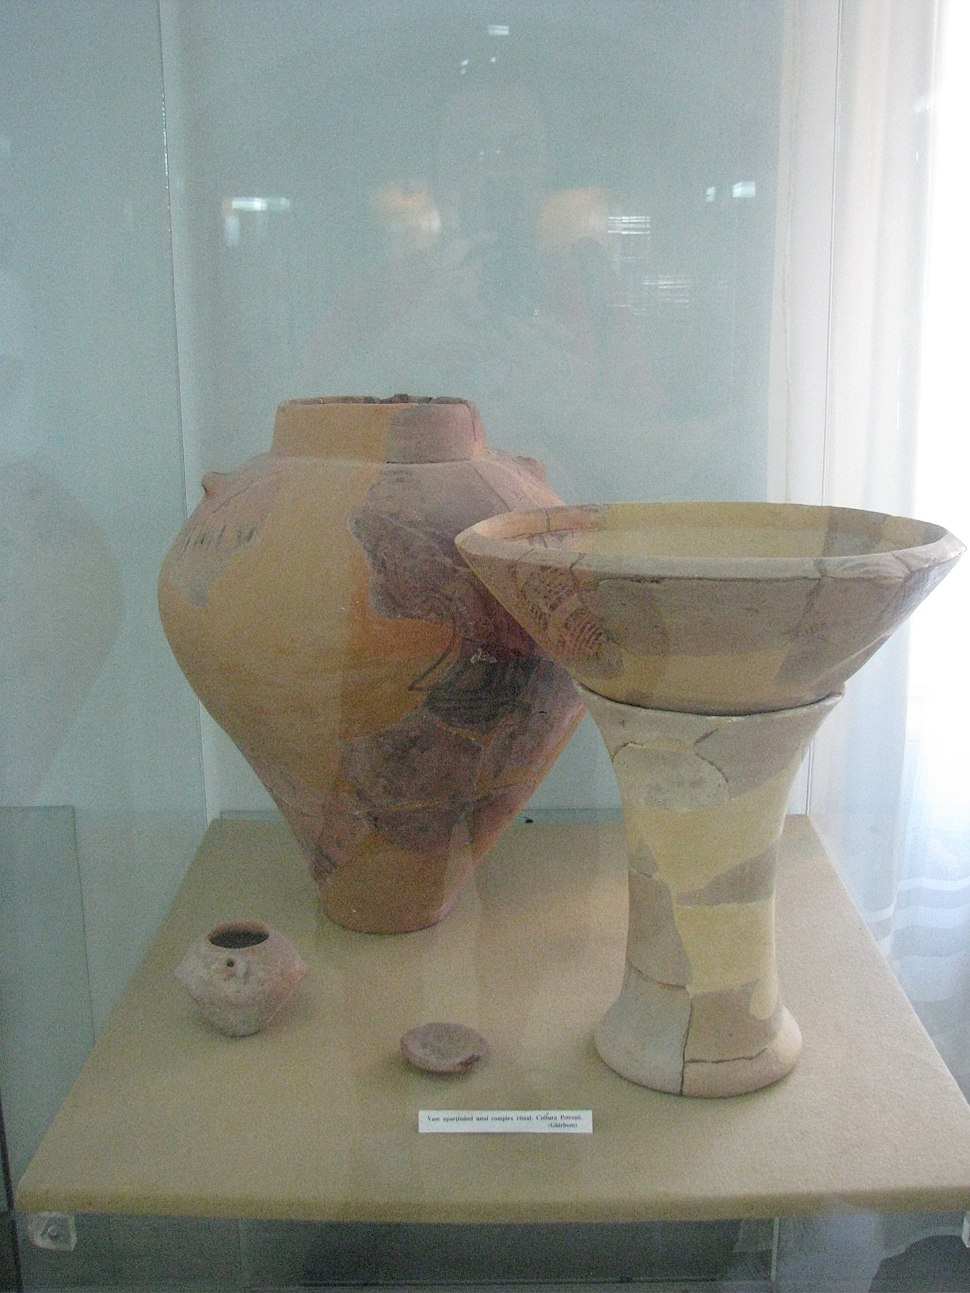 Alba Iulia National Museum of the Union 2011 - Petresti Culture Pottery Belonging to a Ritual Complex from Ghirbom